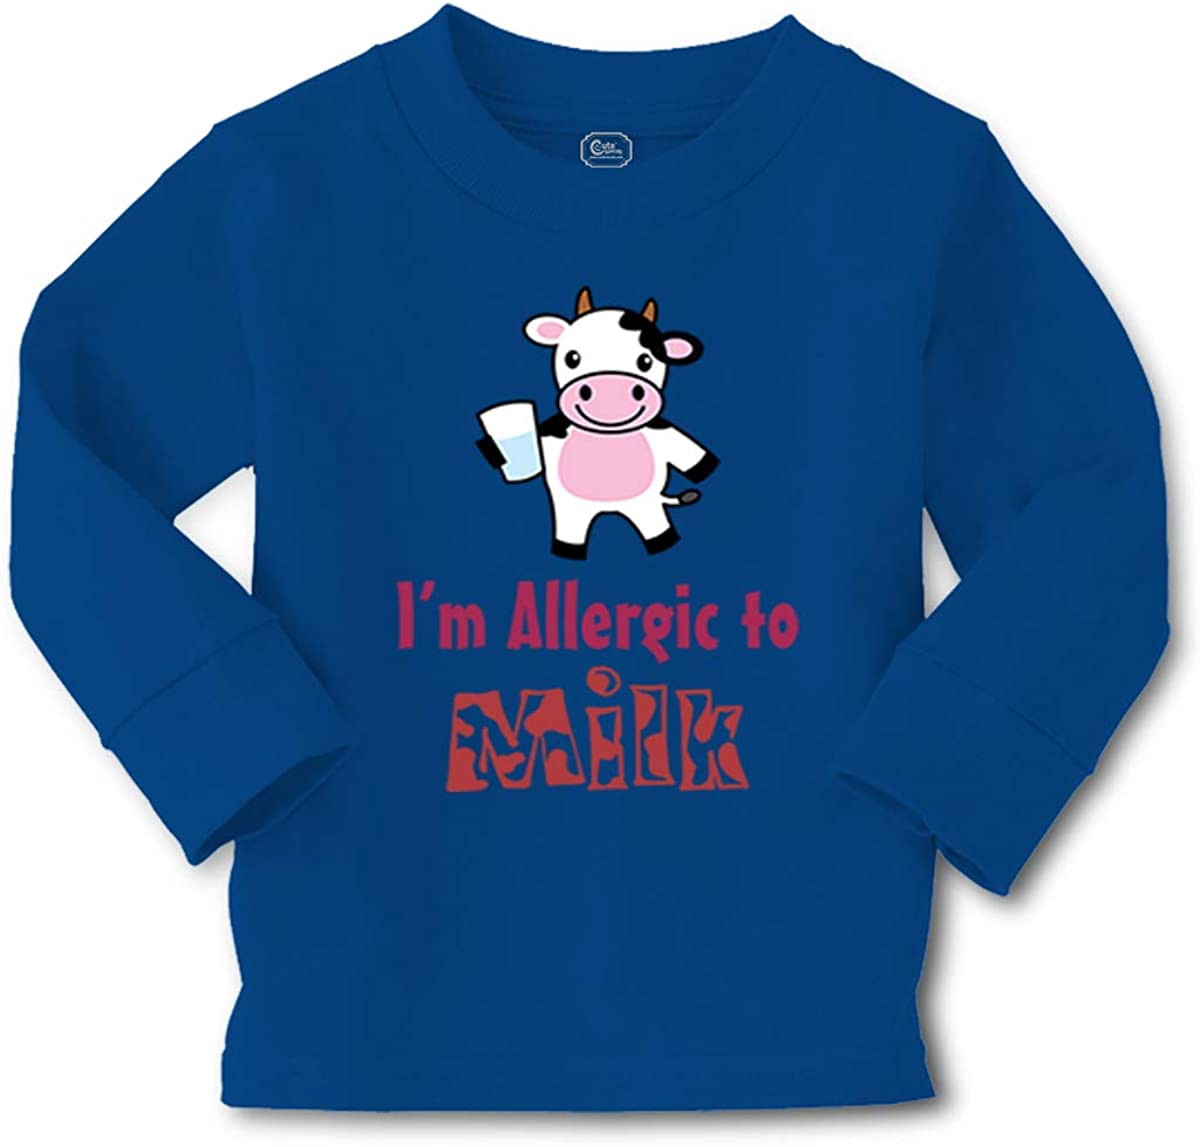 Cute Rascals Kids Long Sleeve T Shirt I'm Allergic to Milk Allergy Warning Funny Humor Cotton